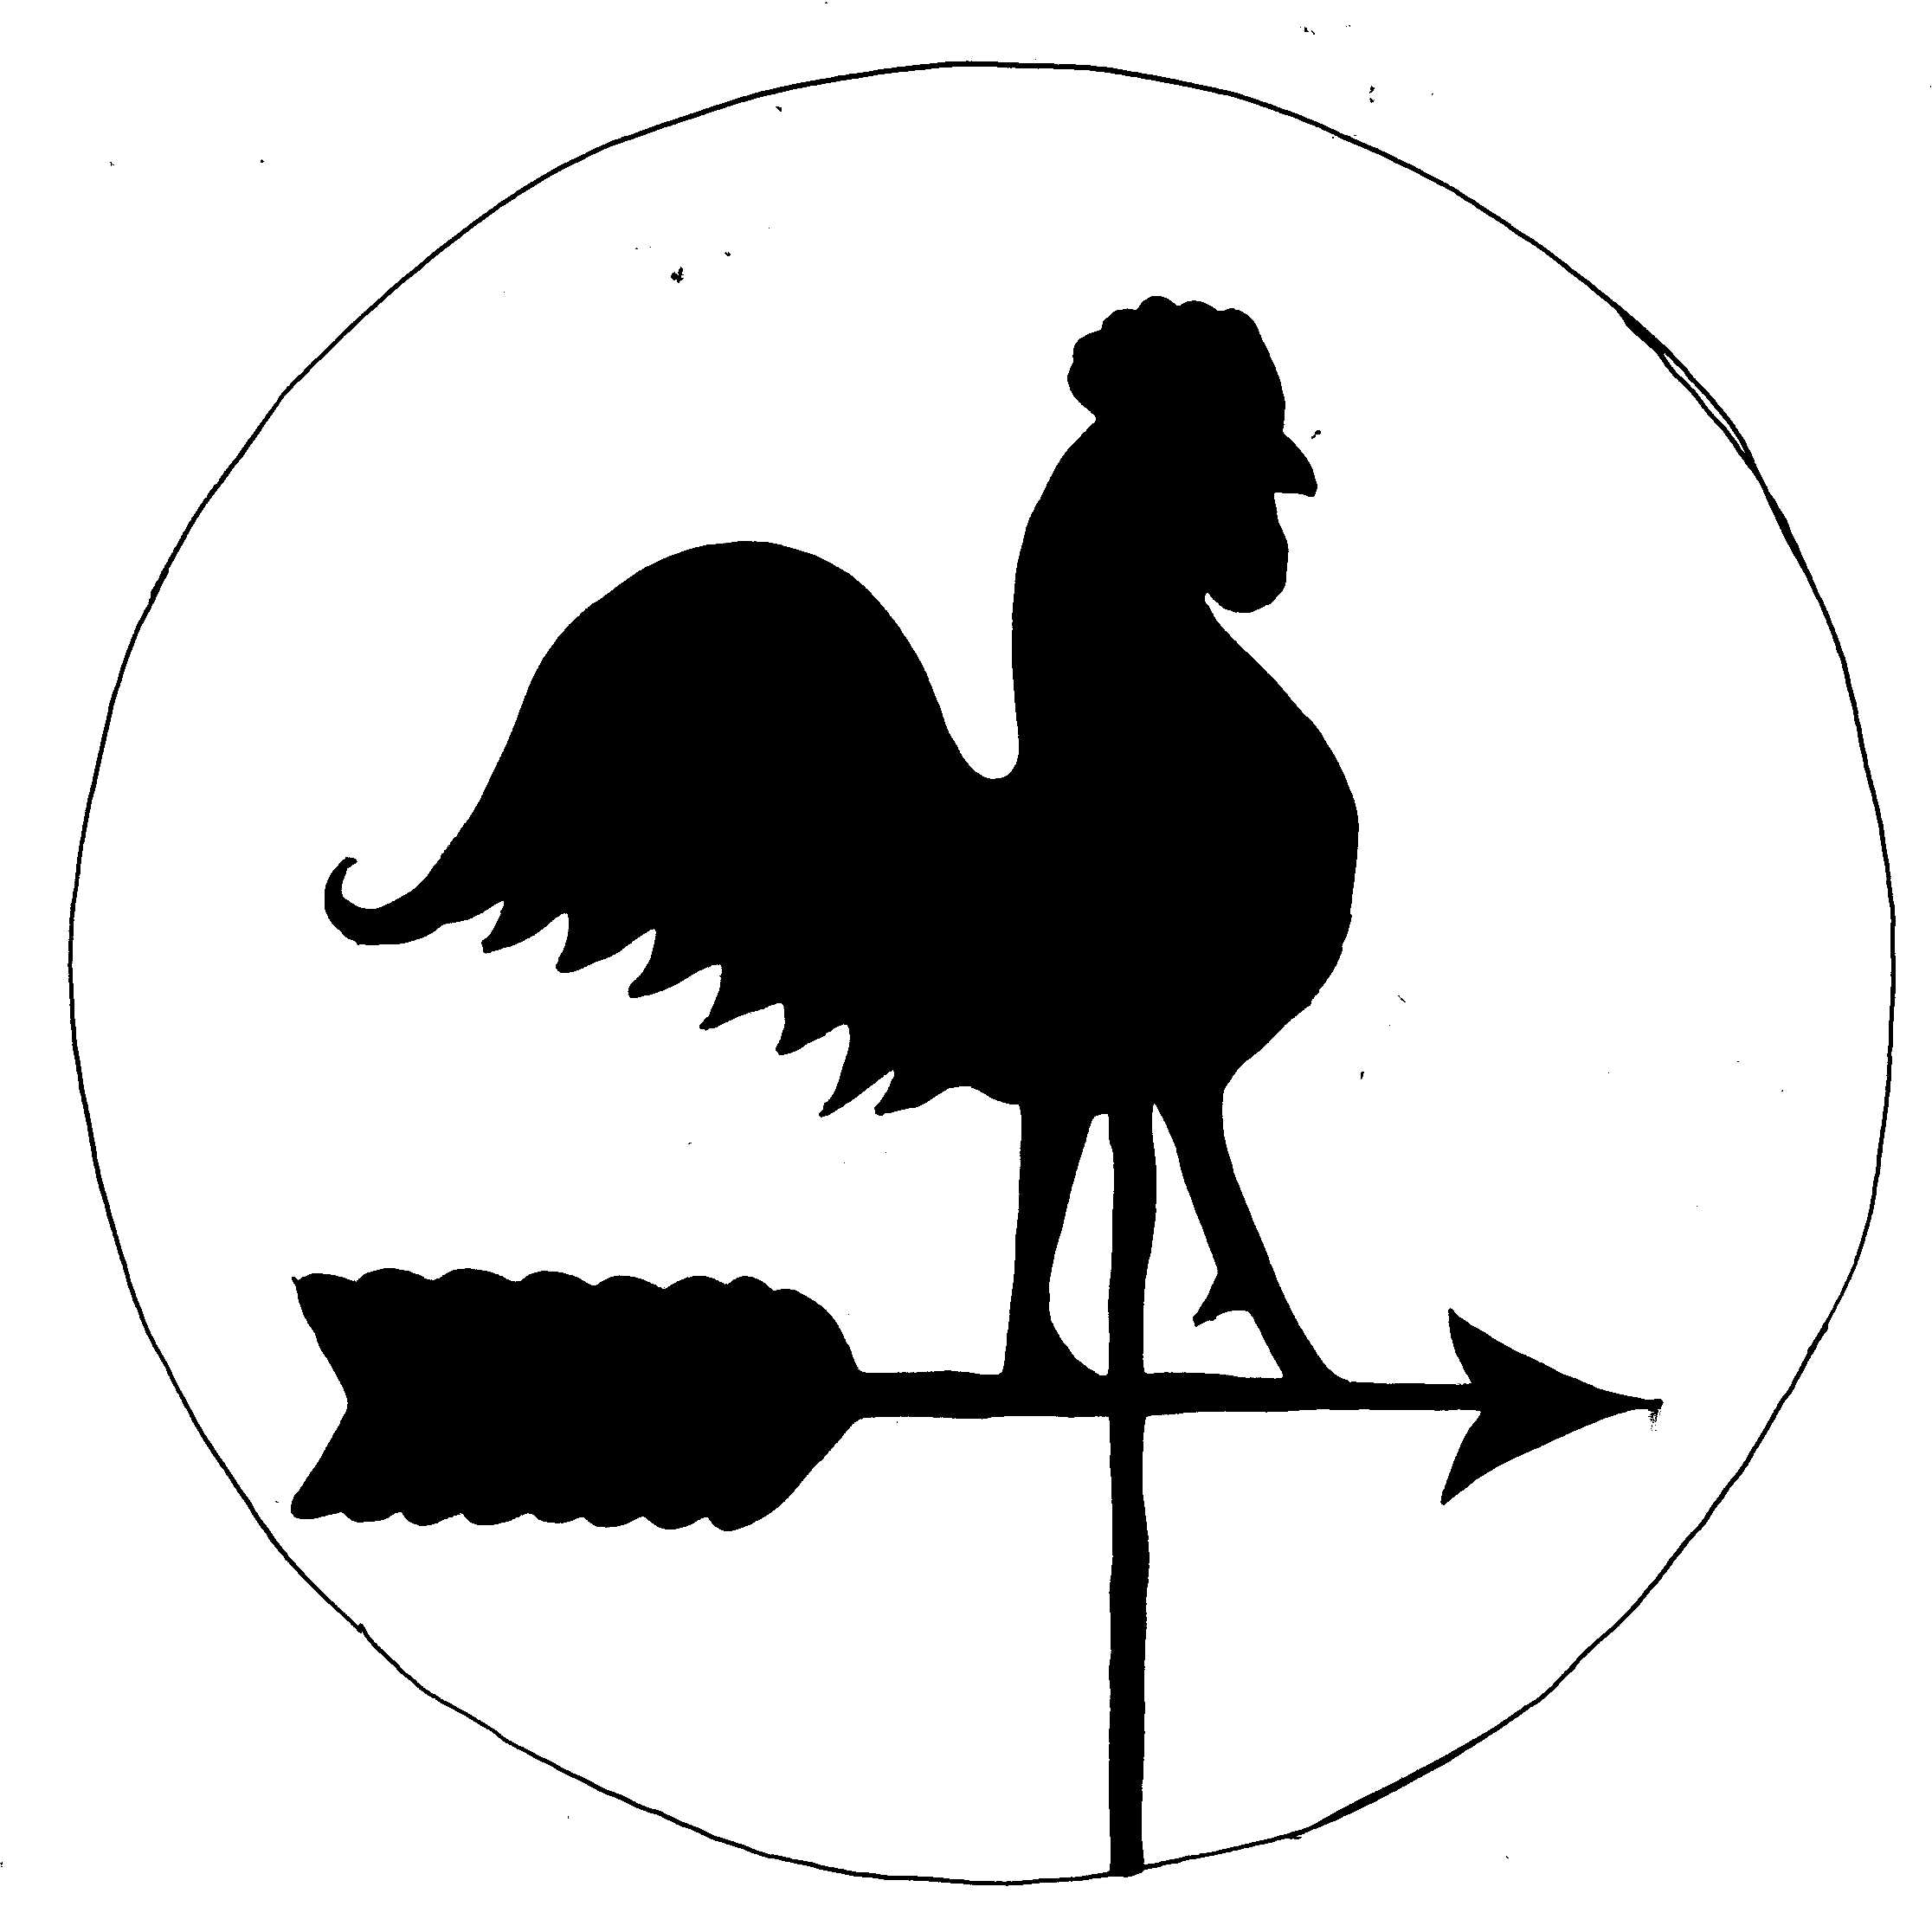 Drawn rooster rooster weathervane Google Search vane ART weather